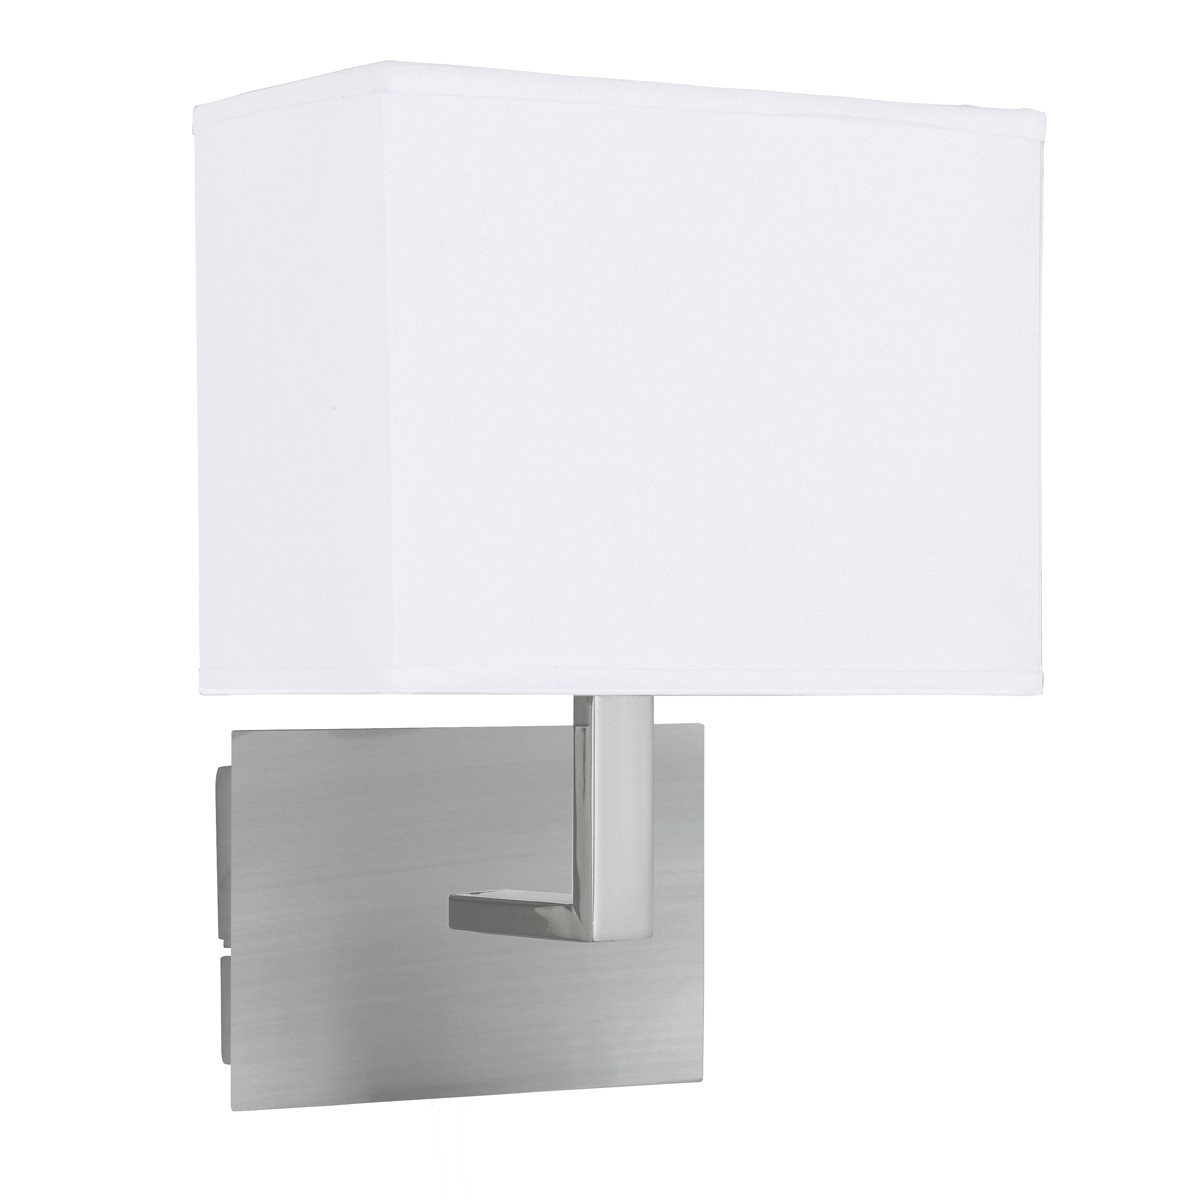 SATIN SILVER WALL LIGHT WITH WHITE RECTANGULAR FABRIC SHADE 5519SS Stanways Stoves and Lights